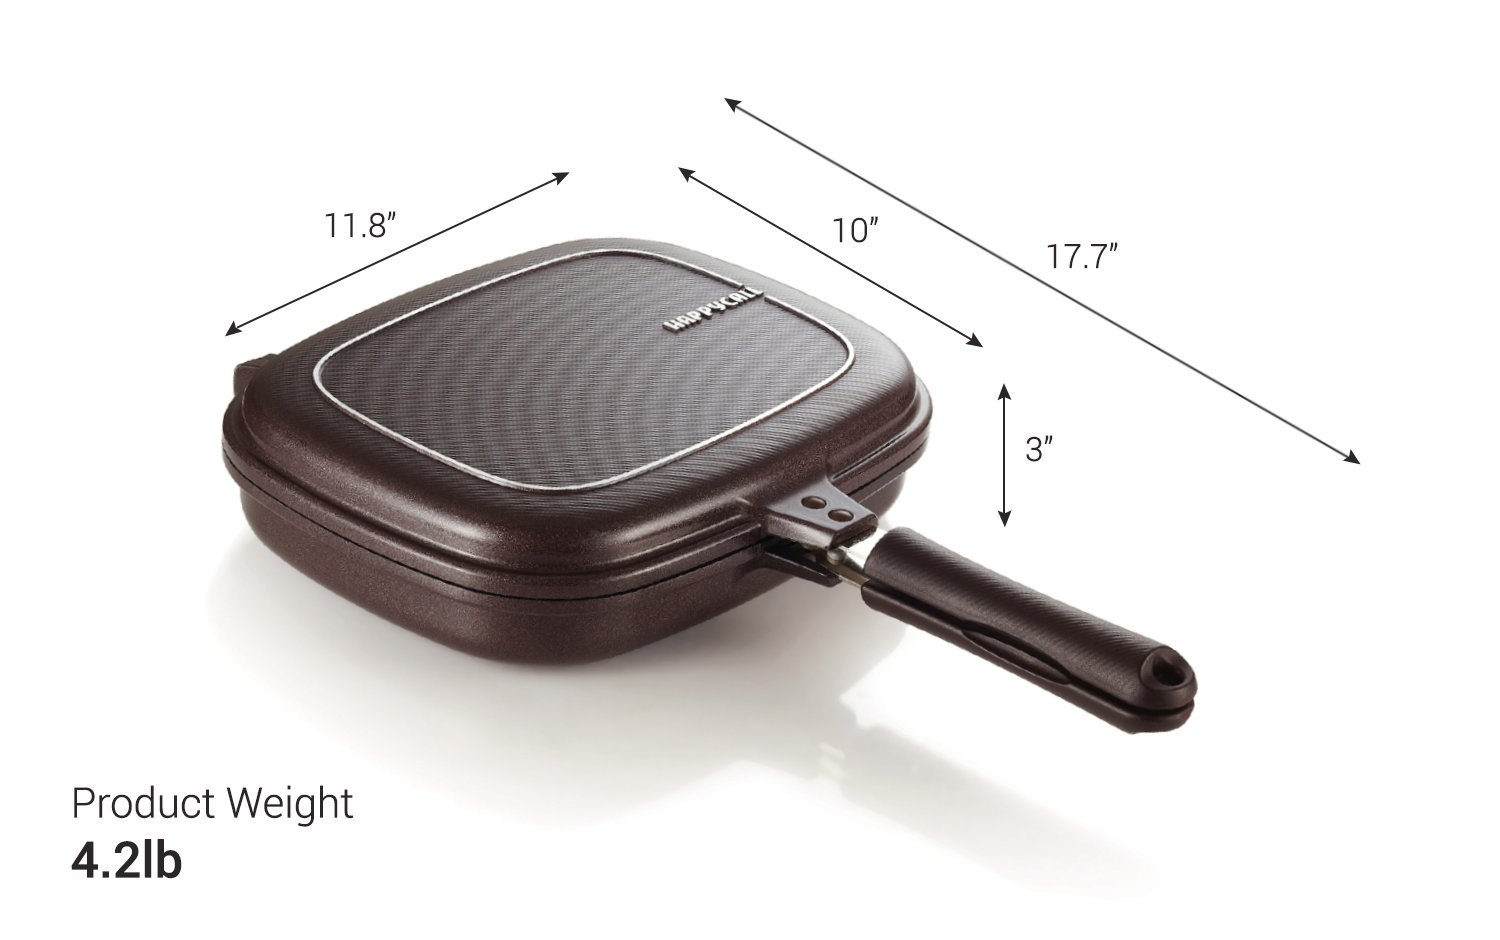 Happycall Titanium Nonstick Double Pan, Omelette Pan, Flip Pan, Square, Dishwasher Safe, PFOA-free, Brown (Jumbo Grill) by Happycall (Image #4)